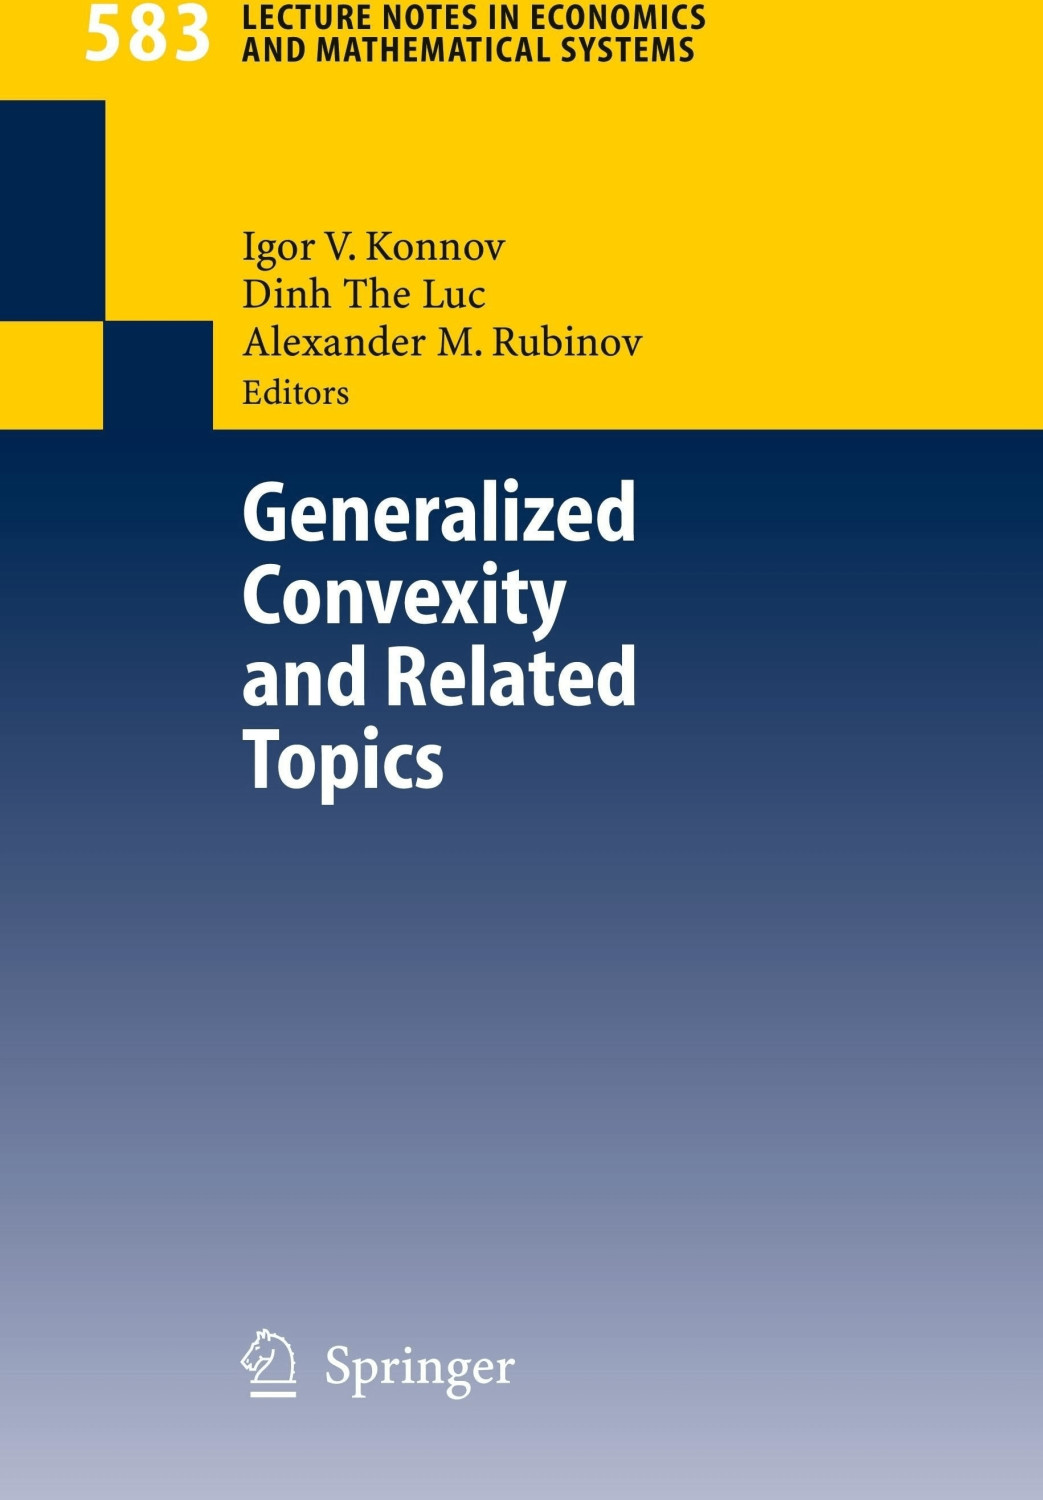 #Generalized Convexity and Related Topics#